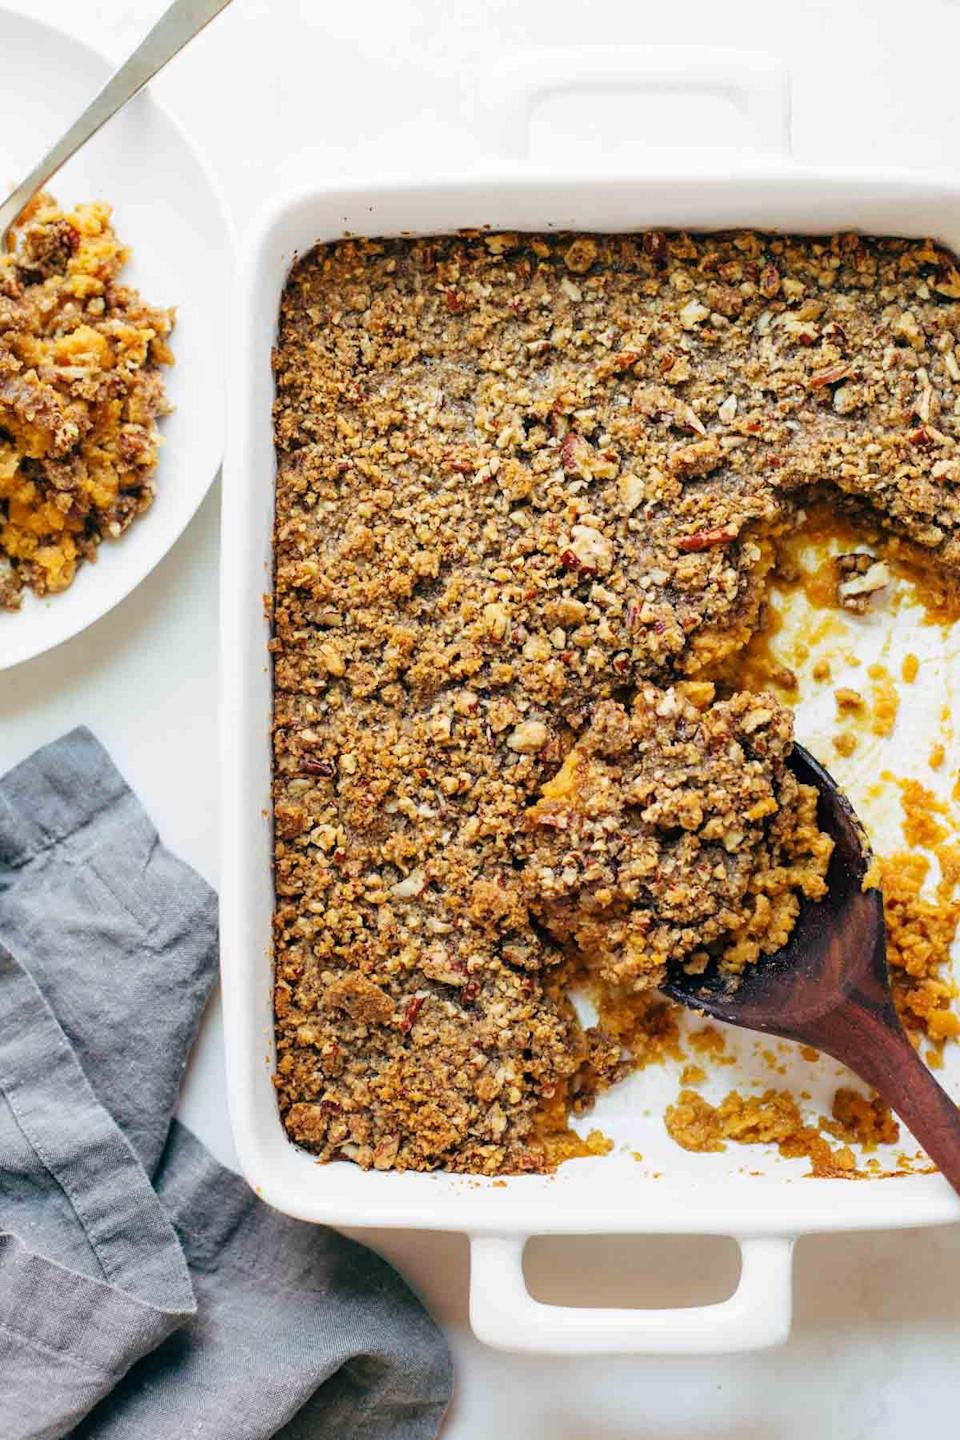 "<p>Keep it super simple, but still rich and delicious, with this mashed sweet potato casserole. The caramelized brown sugar and pecans on top give the soft vegetable underneath a full flavor that nicely complements the traditional turkey, gravy, and stuffings served on Thanksgiving. <br><br><a href="" http://pinchofyum.com/sweet-potato-casserole"" rel=""nofollow noopener"" target=""_blank"" data-ylk=""slk:Get the recipe"" class=""link rapid-noclick-resp"">Get the recipe</a> </p>"